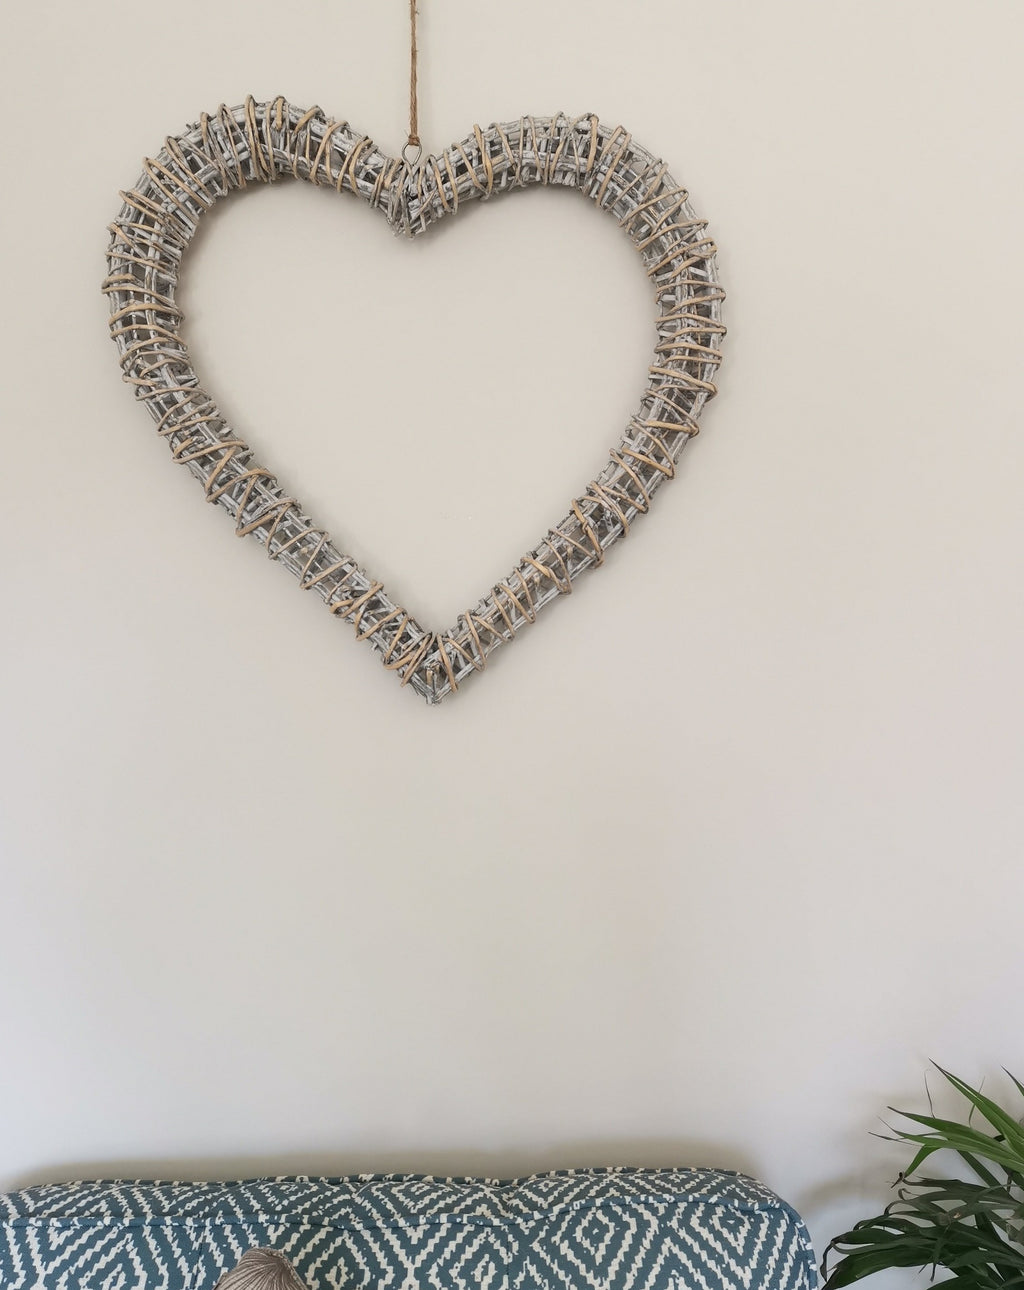 Wicker Heart Christmas Wreath - TBI